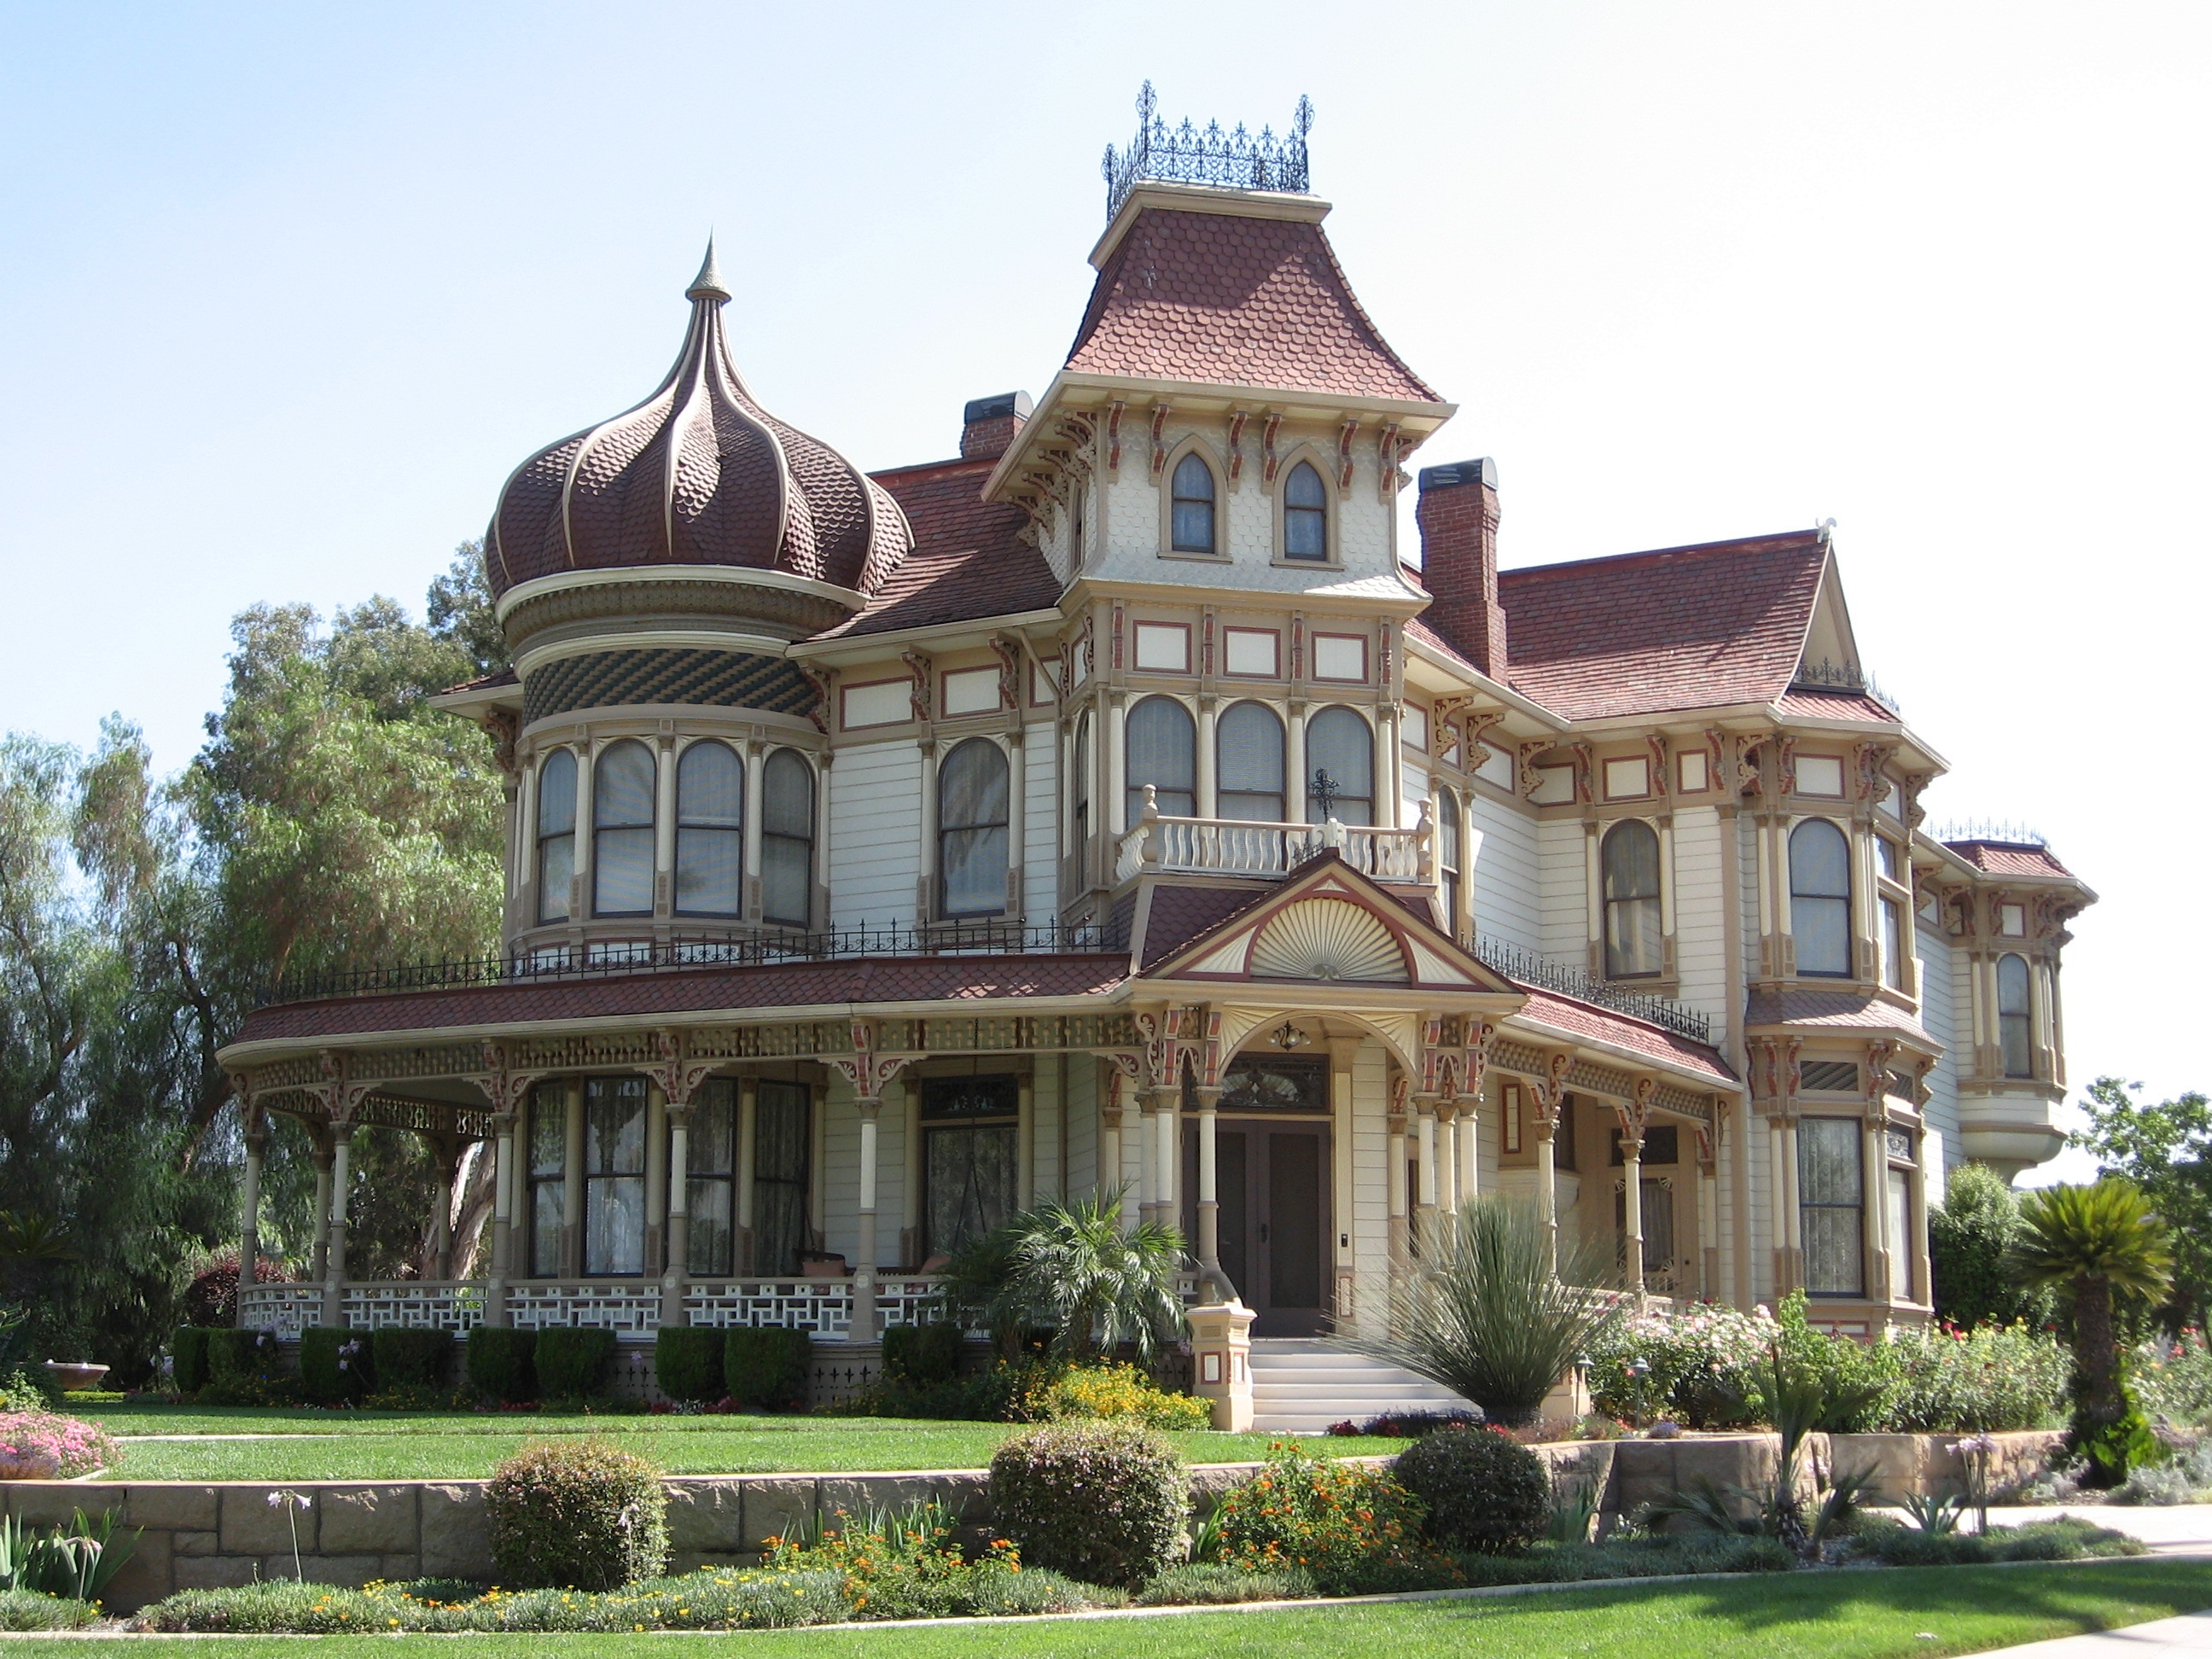 morey mansion redlands 00